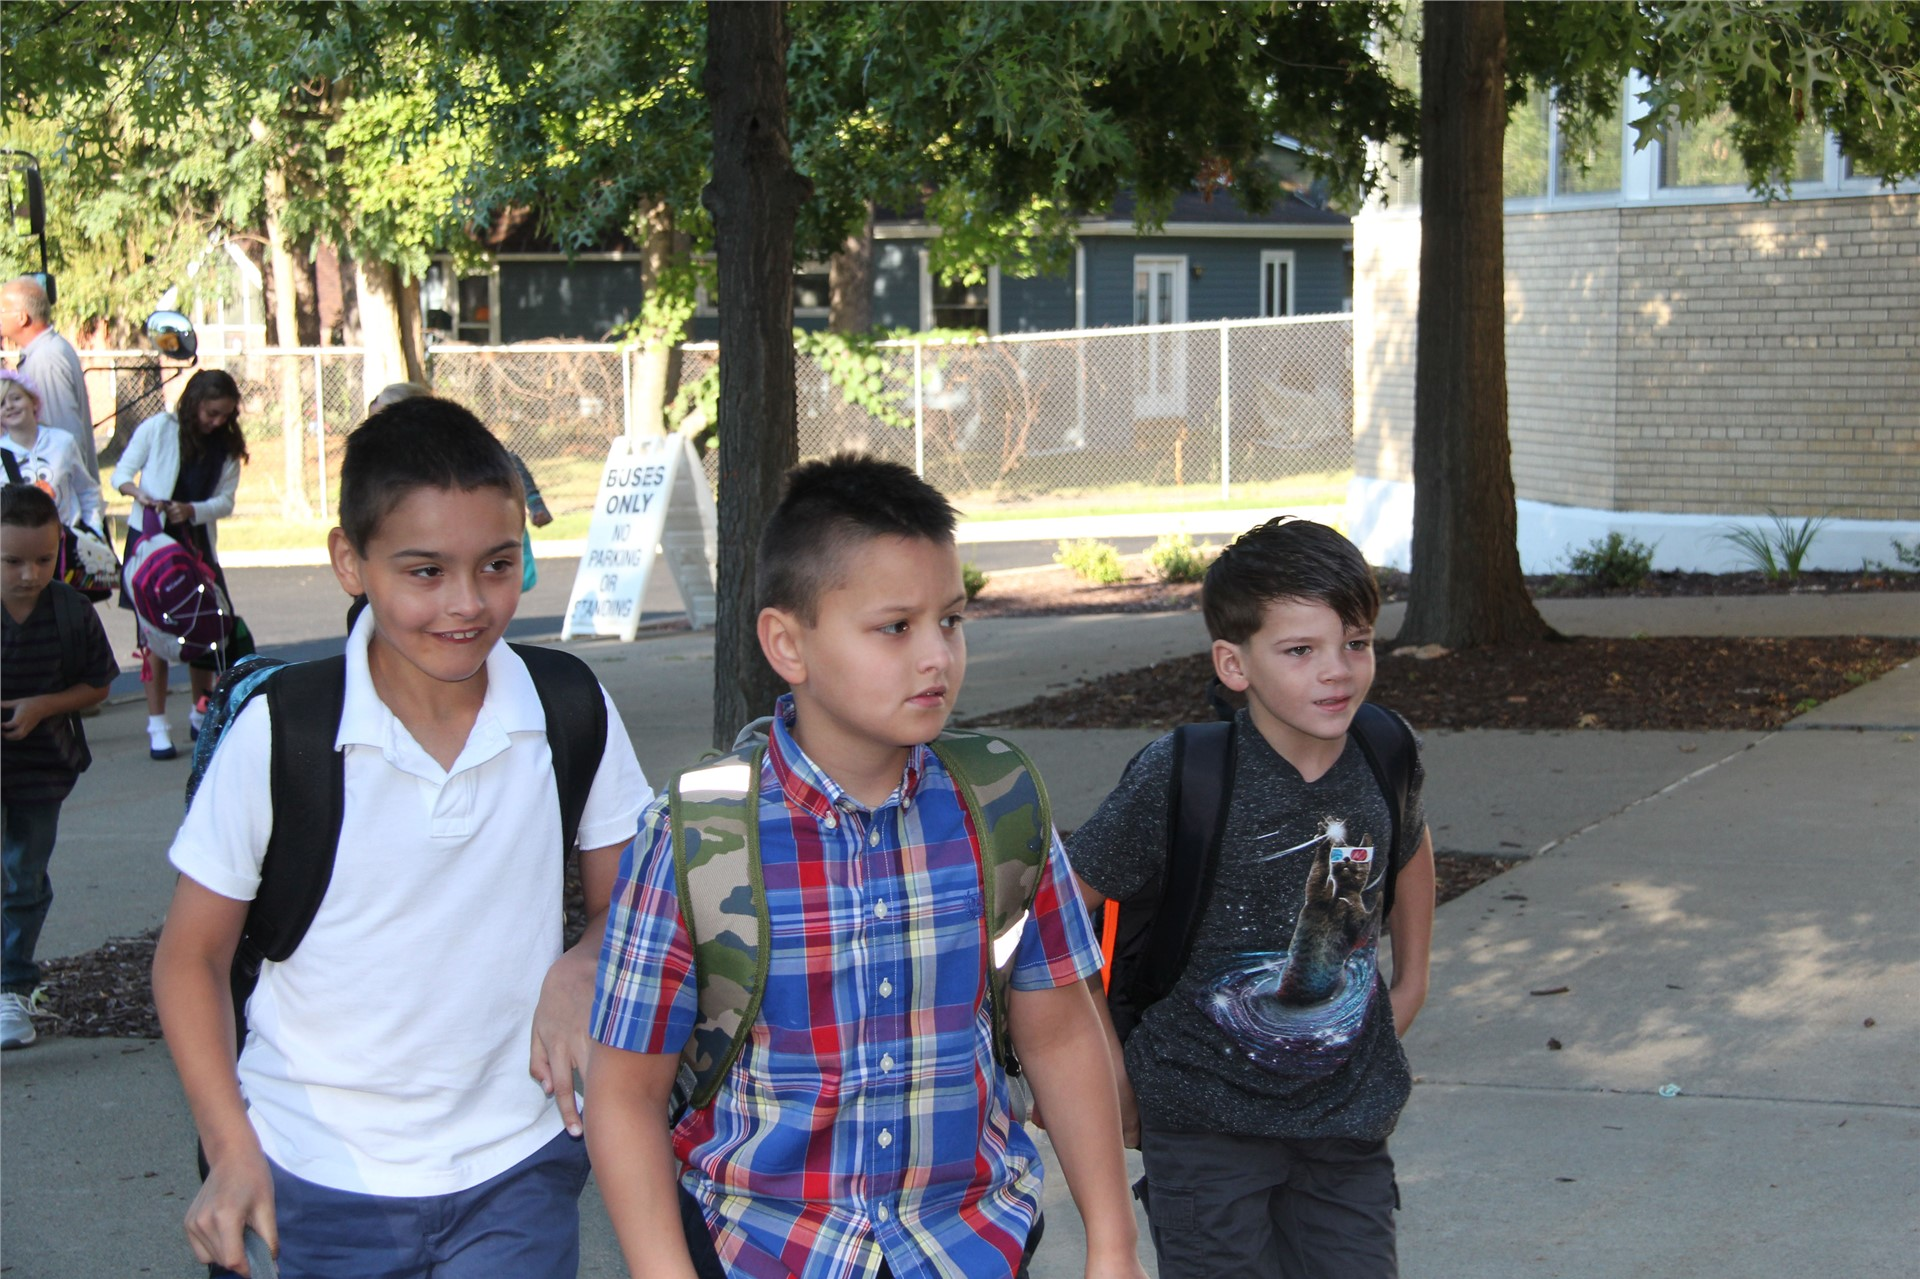 three students walking towards school